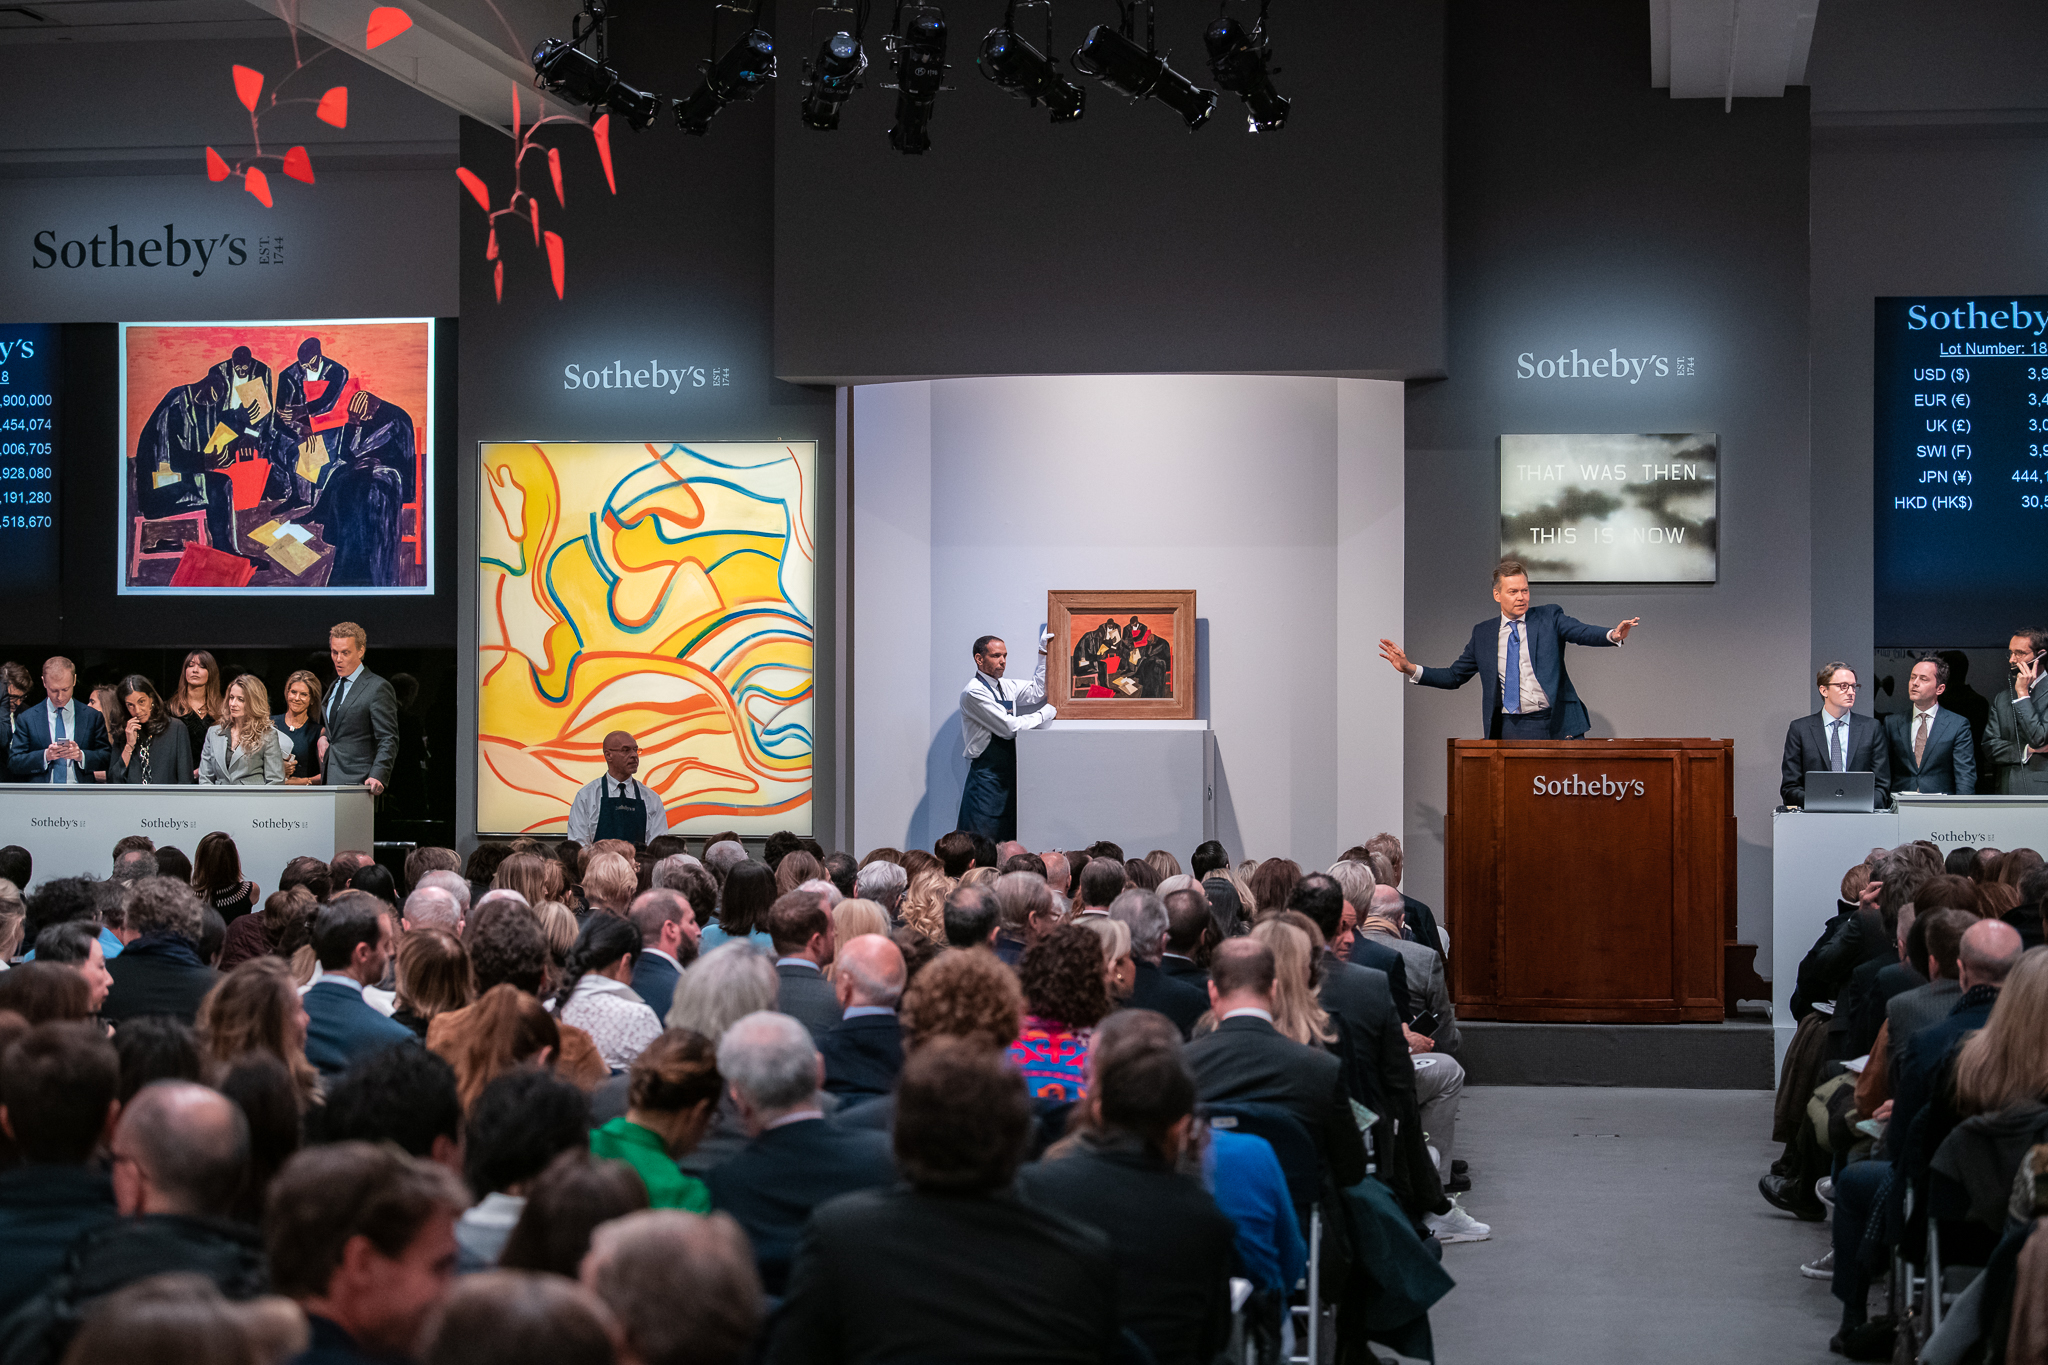 Could Patrick Drahi's Sotheby's Offer Spark a Billion-Dollar Bidding War Over the Company? + Other Stories